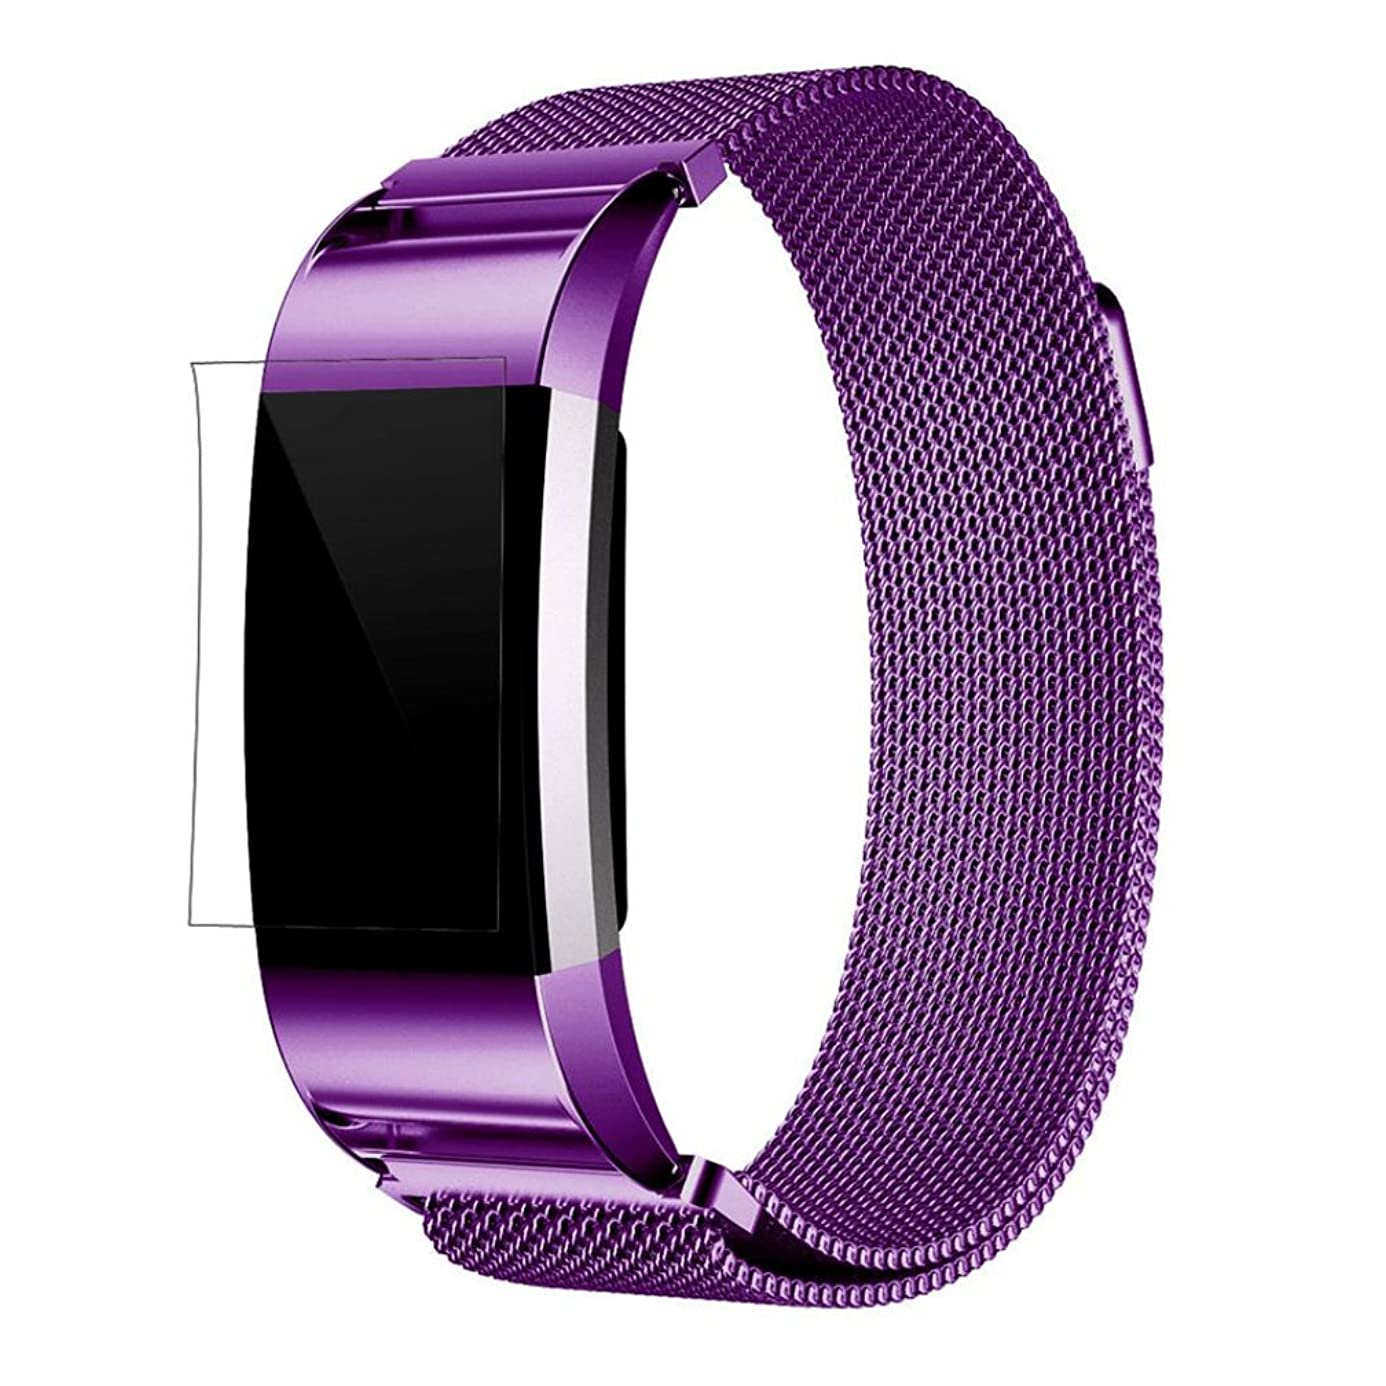 For Fitbit Charge 2 Bands, FreshZone Accessories Replacement Band Stainless Steel Watch Band Strap Bracelet with HD Filmfor Screen Protector Fitbit Charge 2 (Purple) gwb9964193